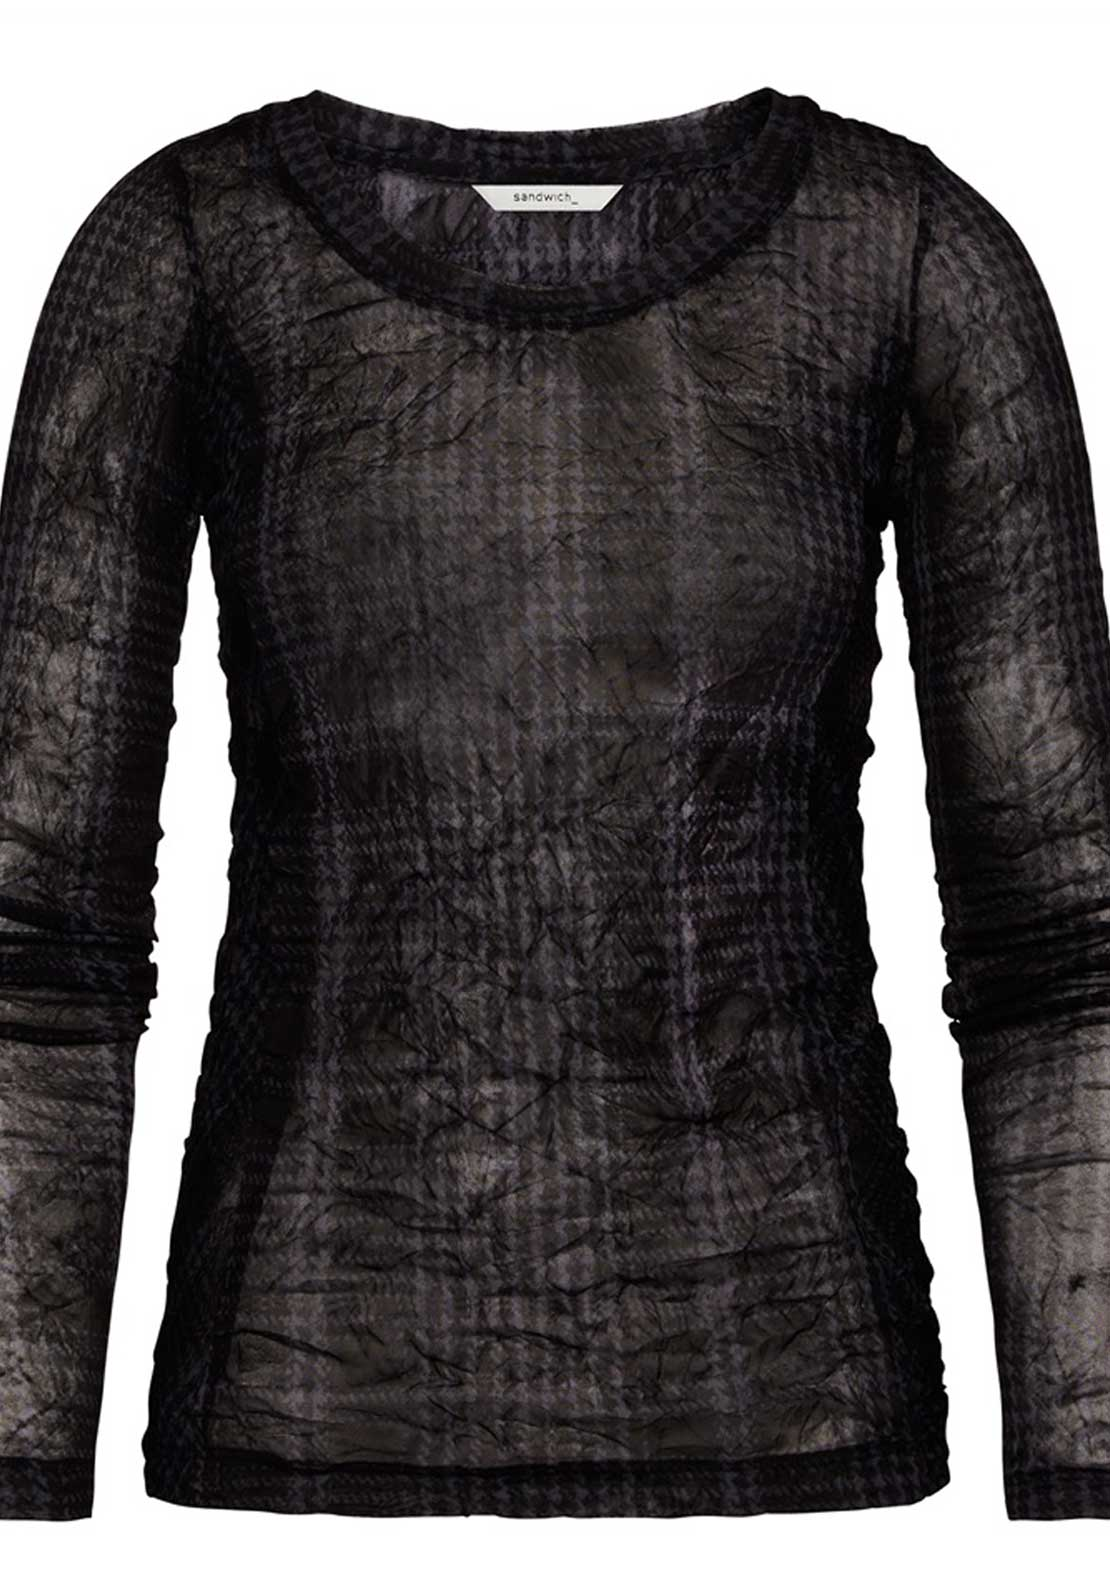 Sandwich Semi Sheer Houndstooth Print Long Sleeve Top, Black